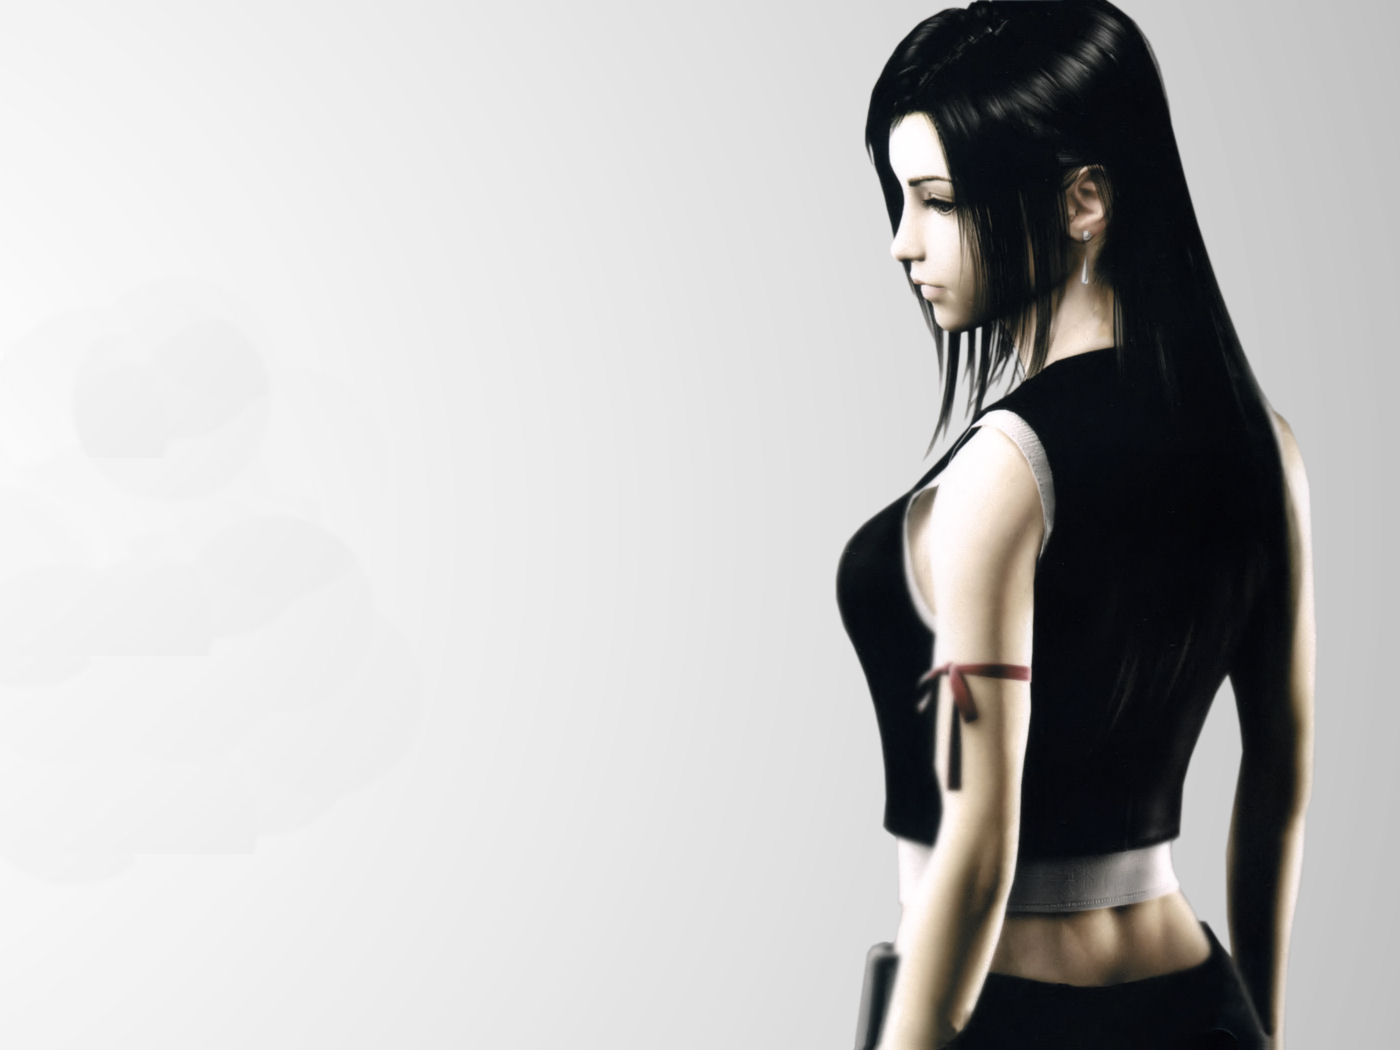 89 final fantasy vii advent children hd wallpapers backgrounds - 89 Final Fantasy Vii Advent Children Hd Wallpapers Backgrounds 8